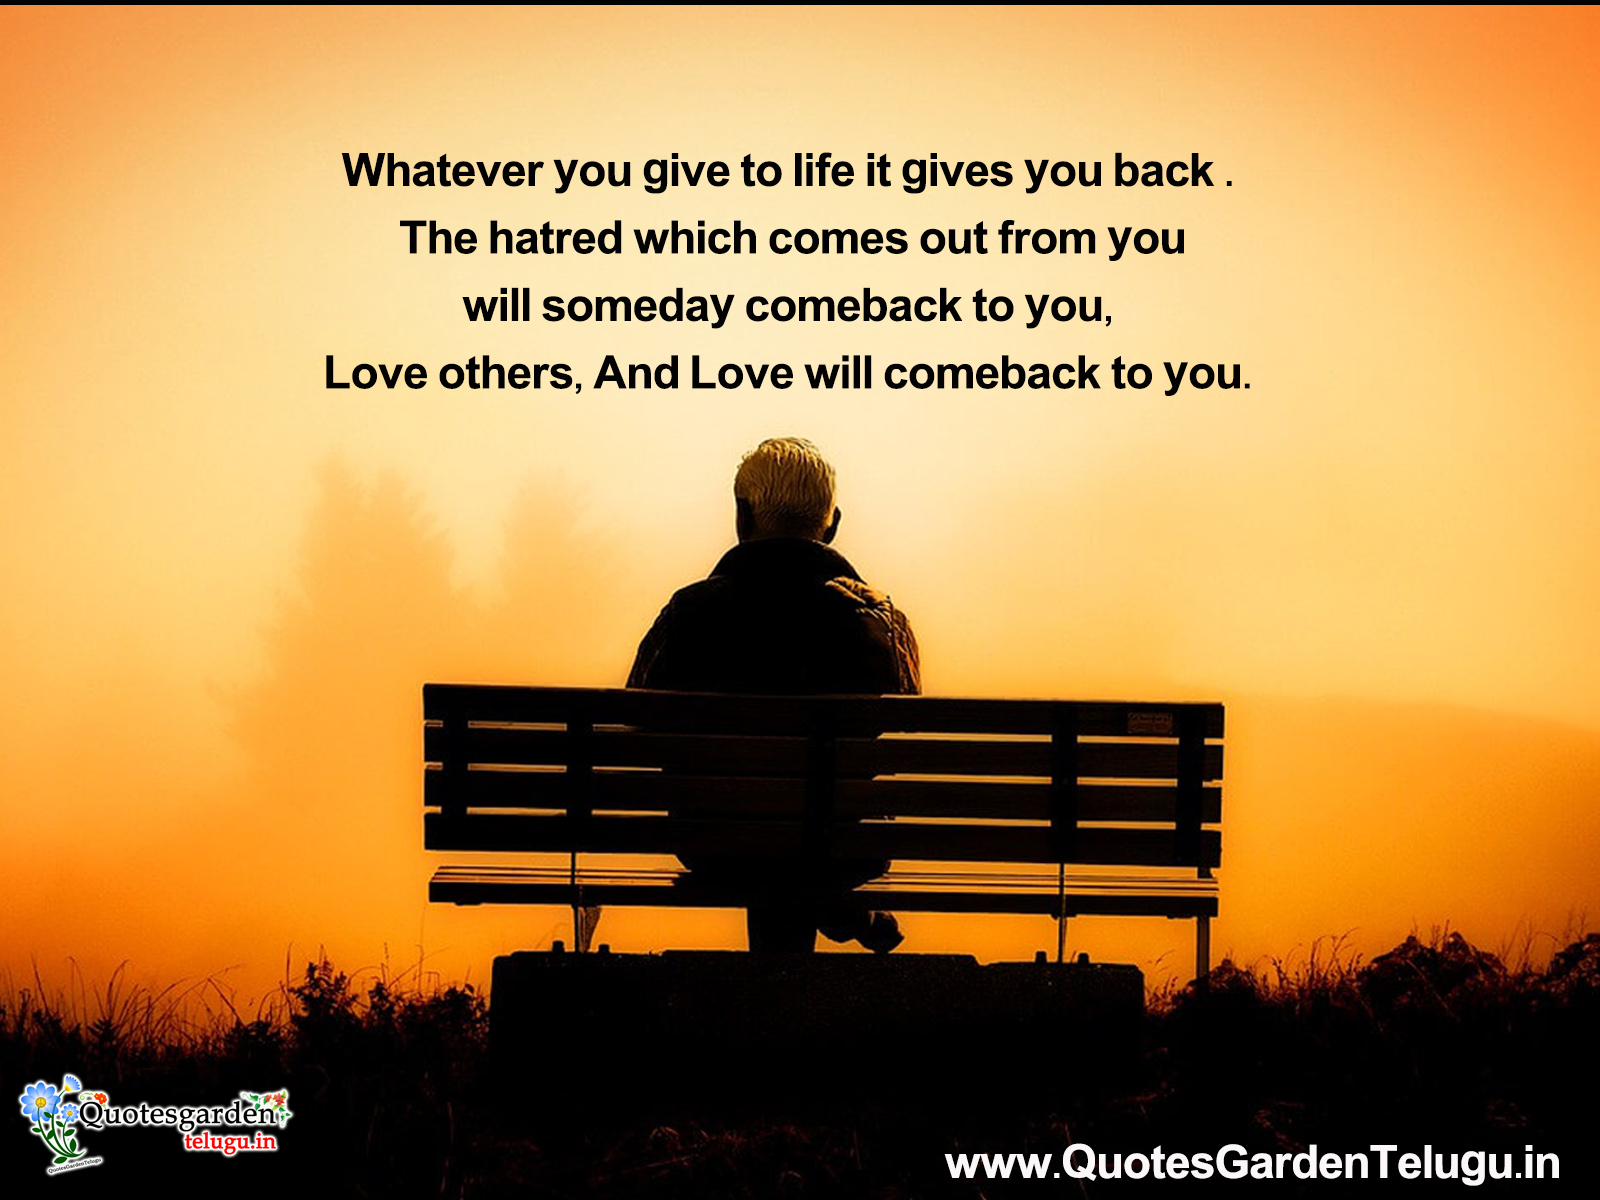 Top 20 Heart touching Quotes about life | QUOTES GARDEN